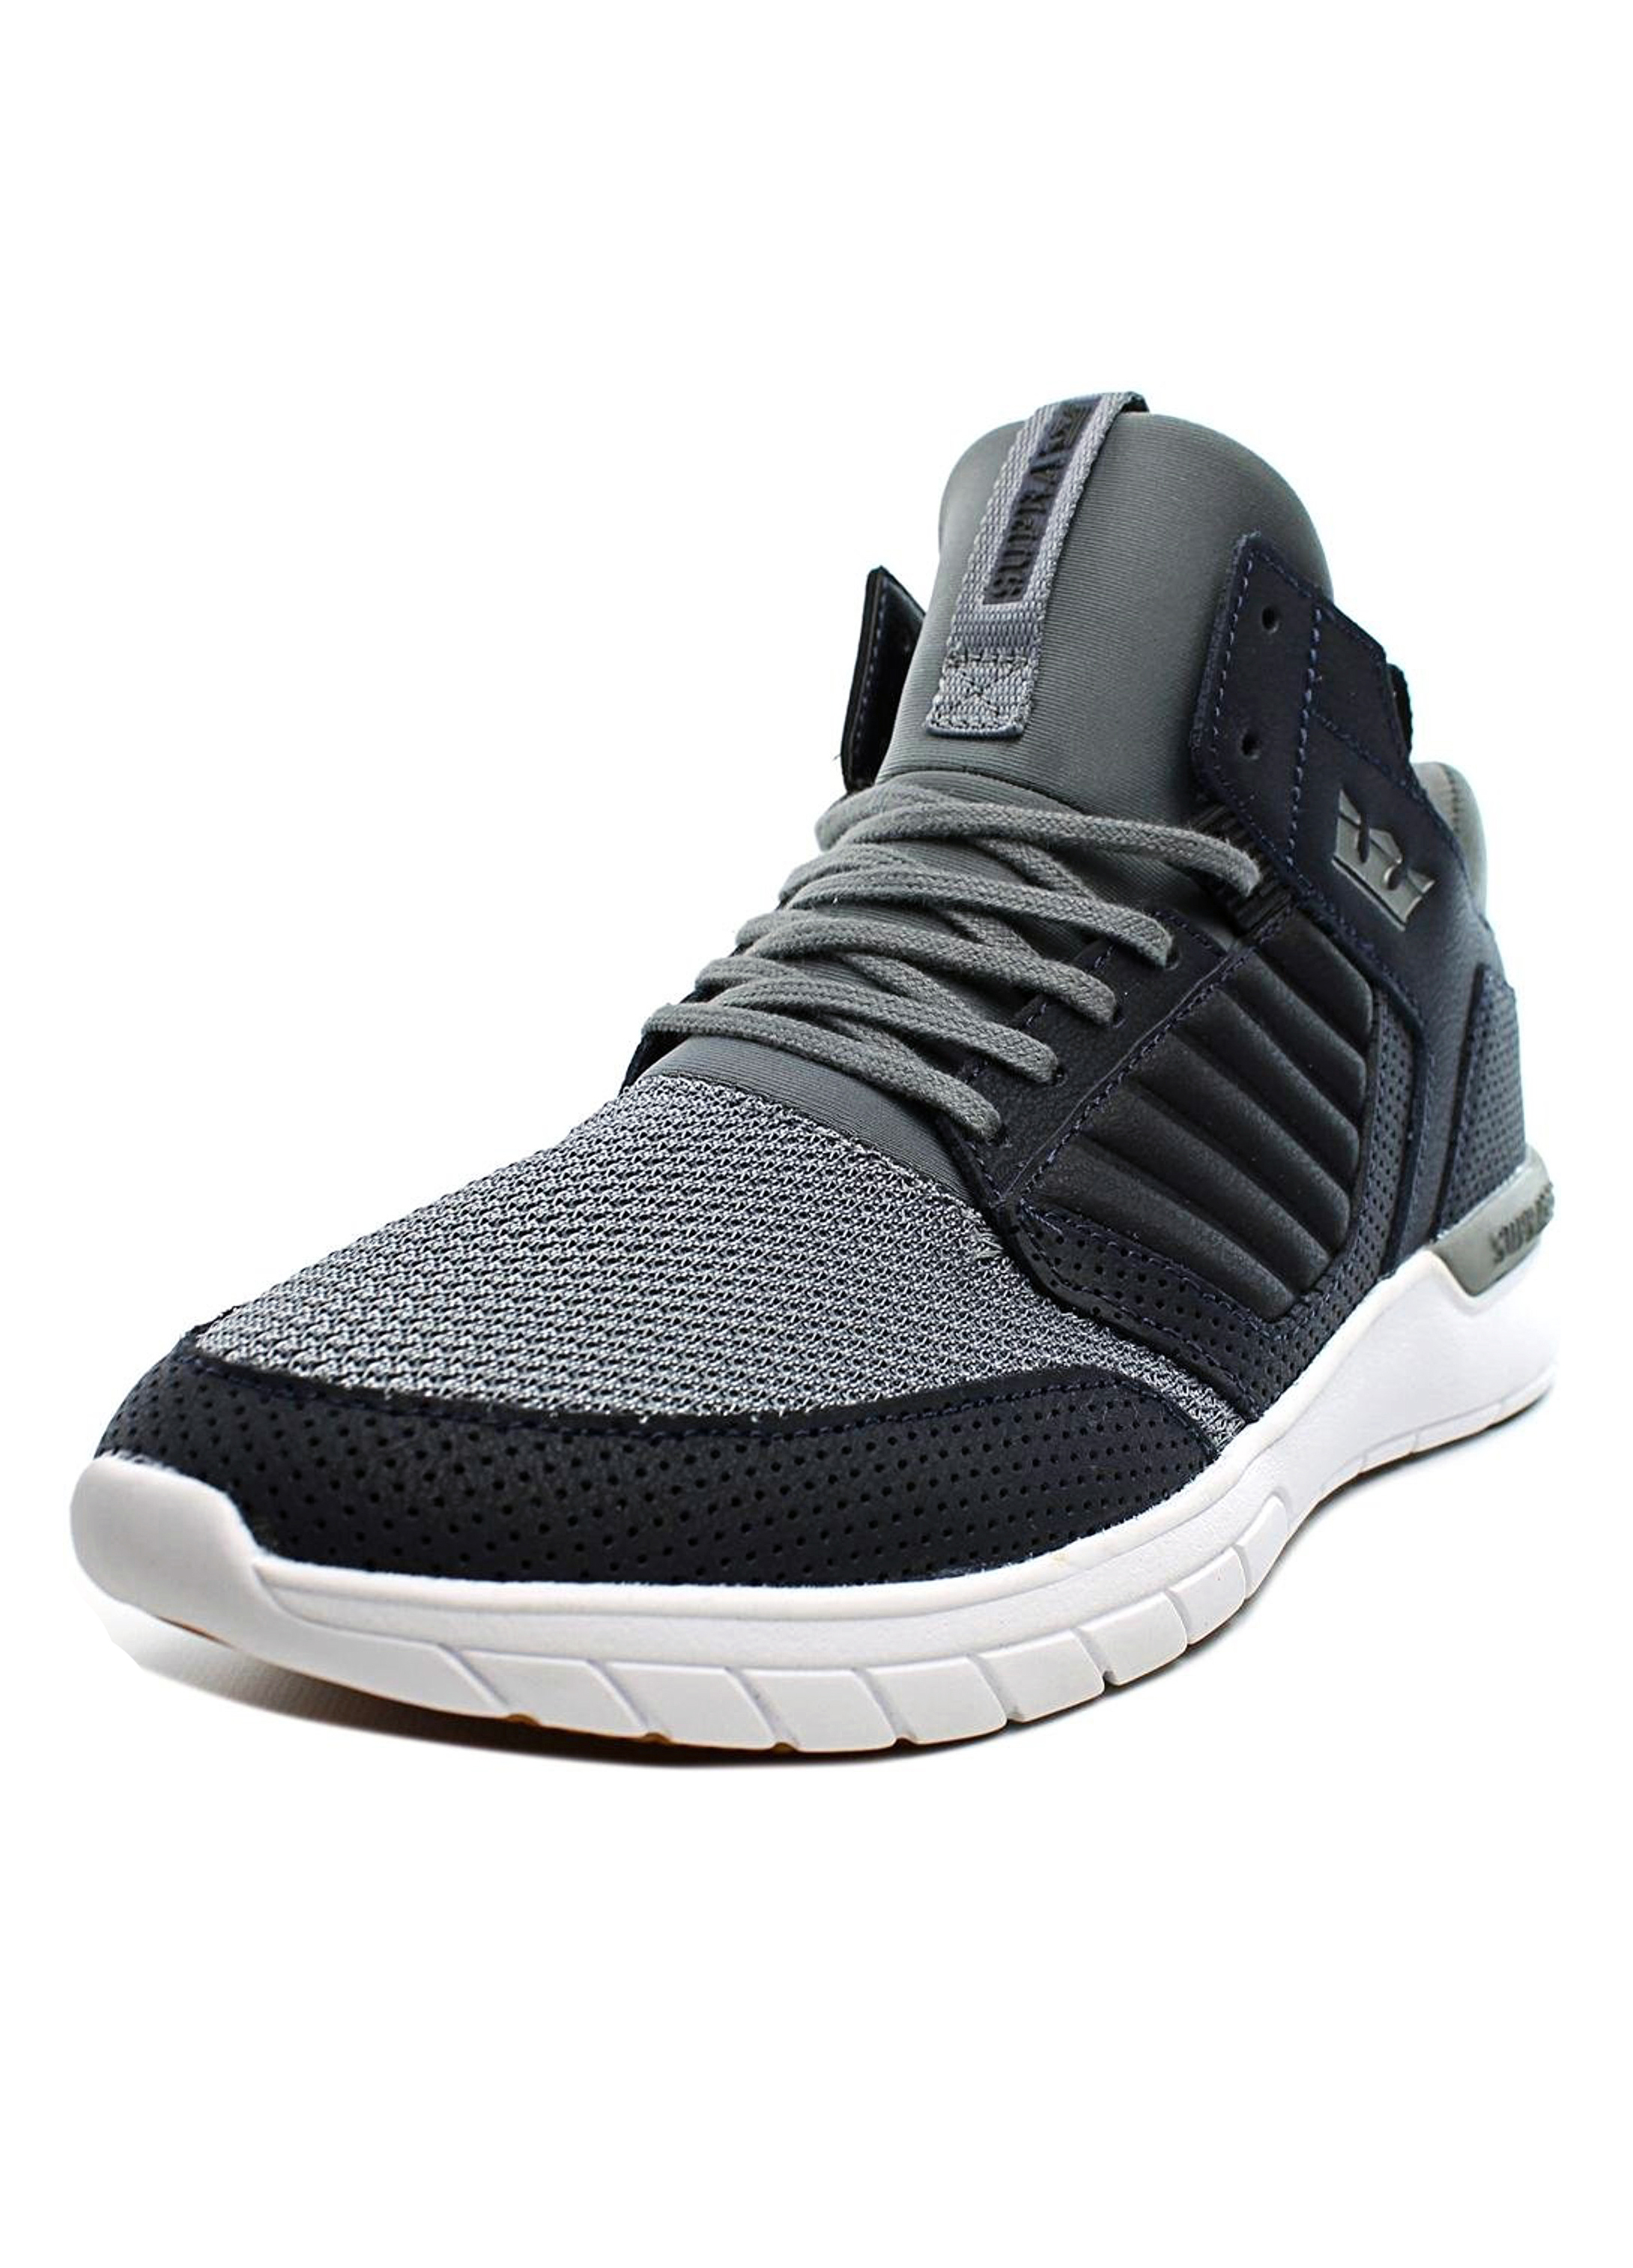 8f01dbdd09f30 SUPRA Method Lightweight Mesh Trainer Casual Sporty Gym Sneaker Shoe ...